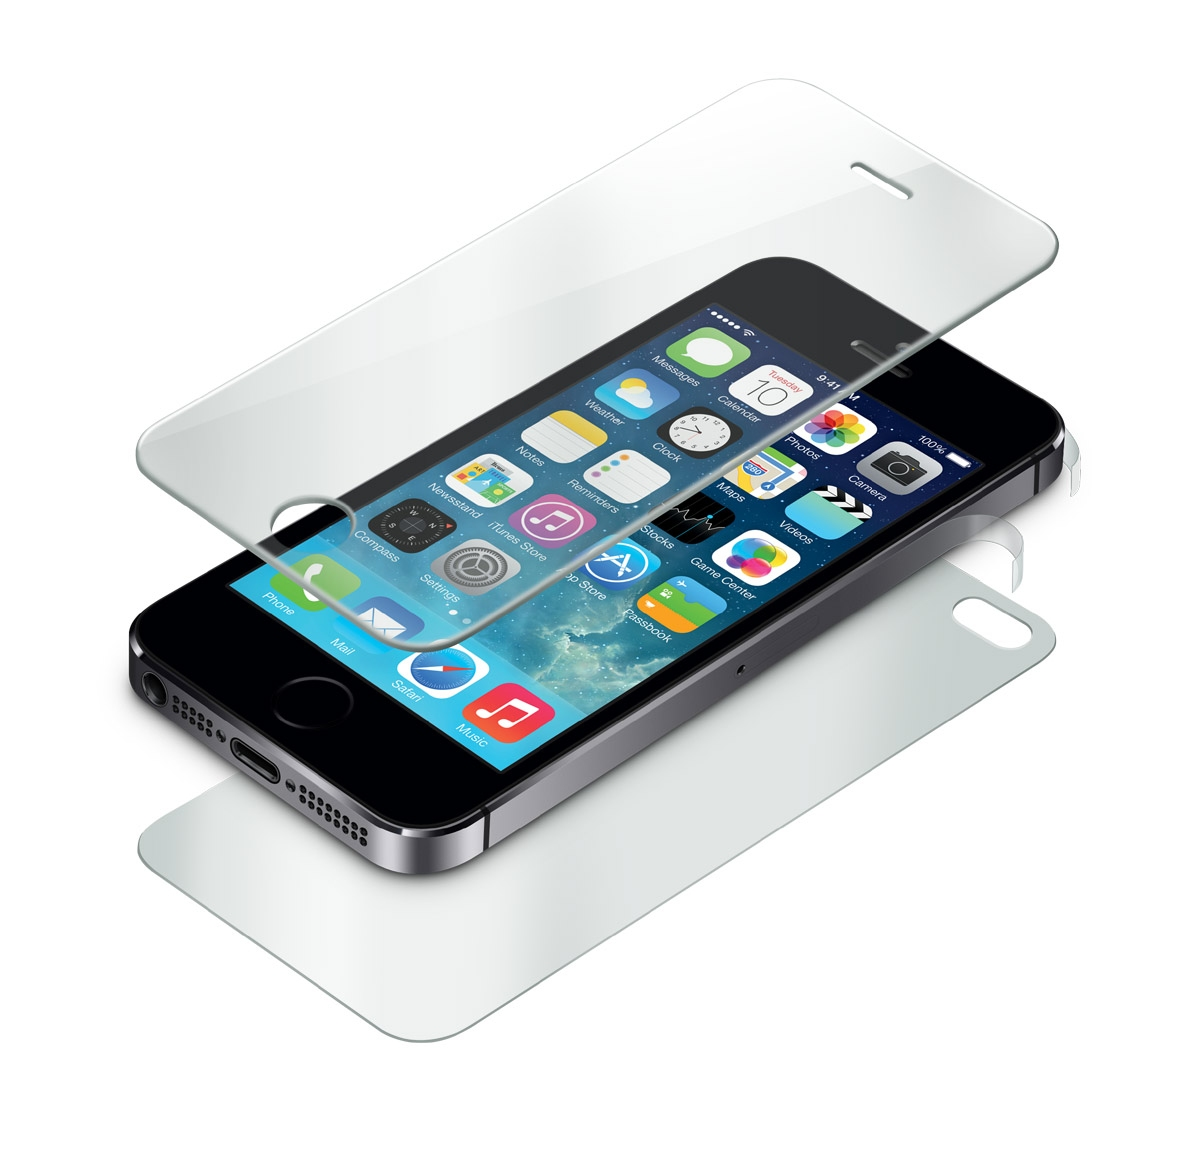 pack protection verre tremp pour iphone 5 5s prix promo moins 15 euros wearemobians. Black Bedroom Furniture Sets. Home Design Ideas